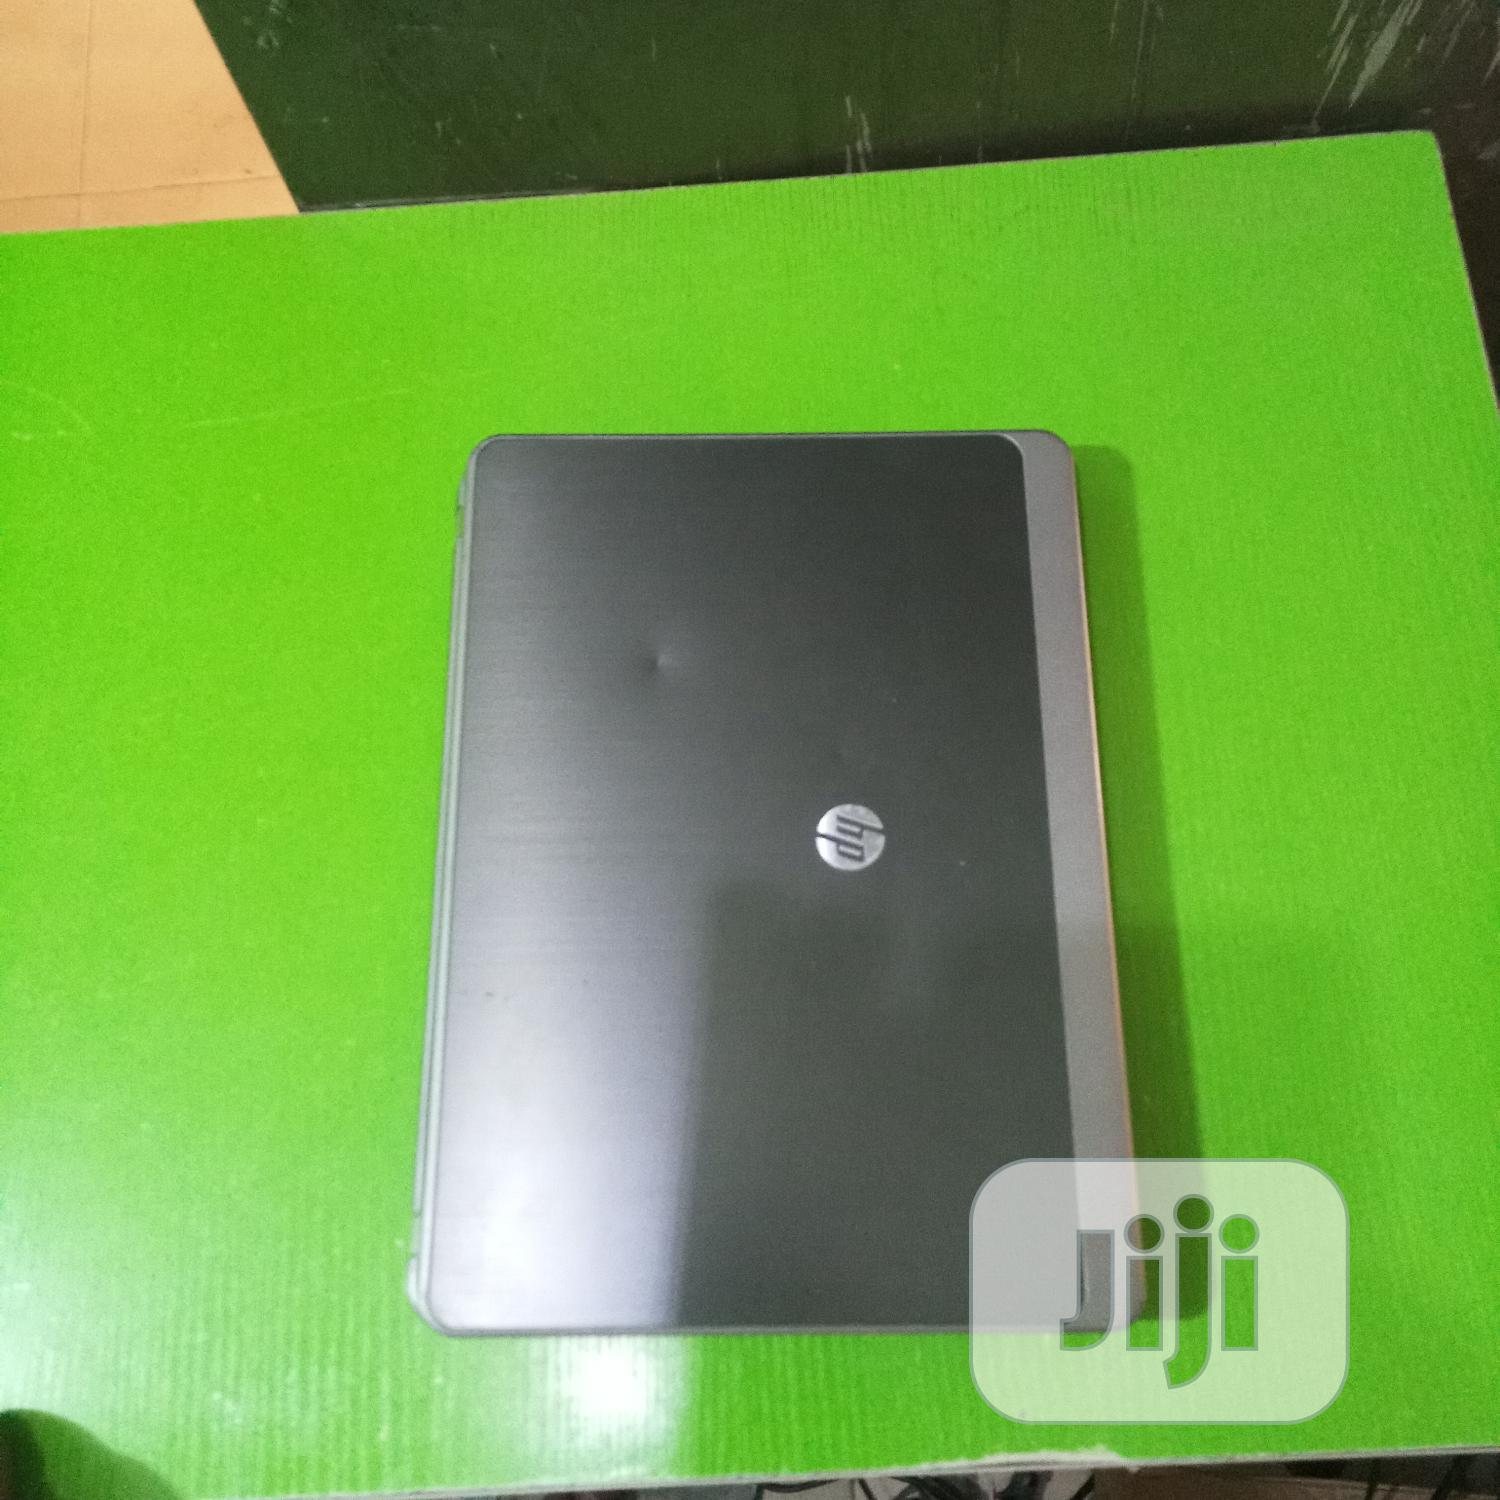 Laptop HP ProBook 4230S 4GB Intel Core I5 750GB | Laptops & Computers for sale in Central Business District, Abuja (FCT) State, Nigeria